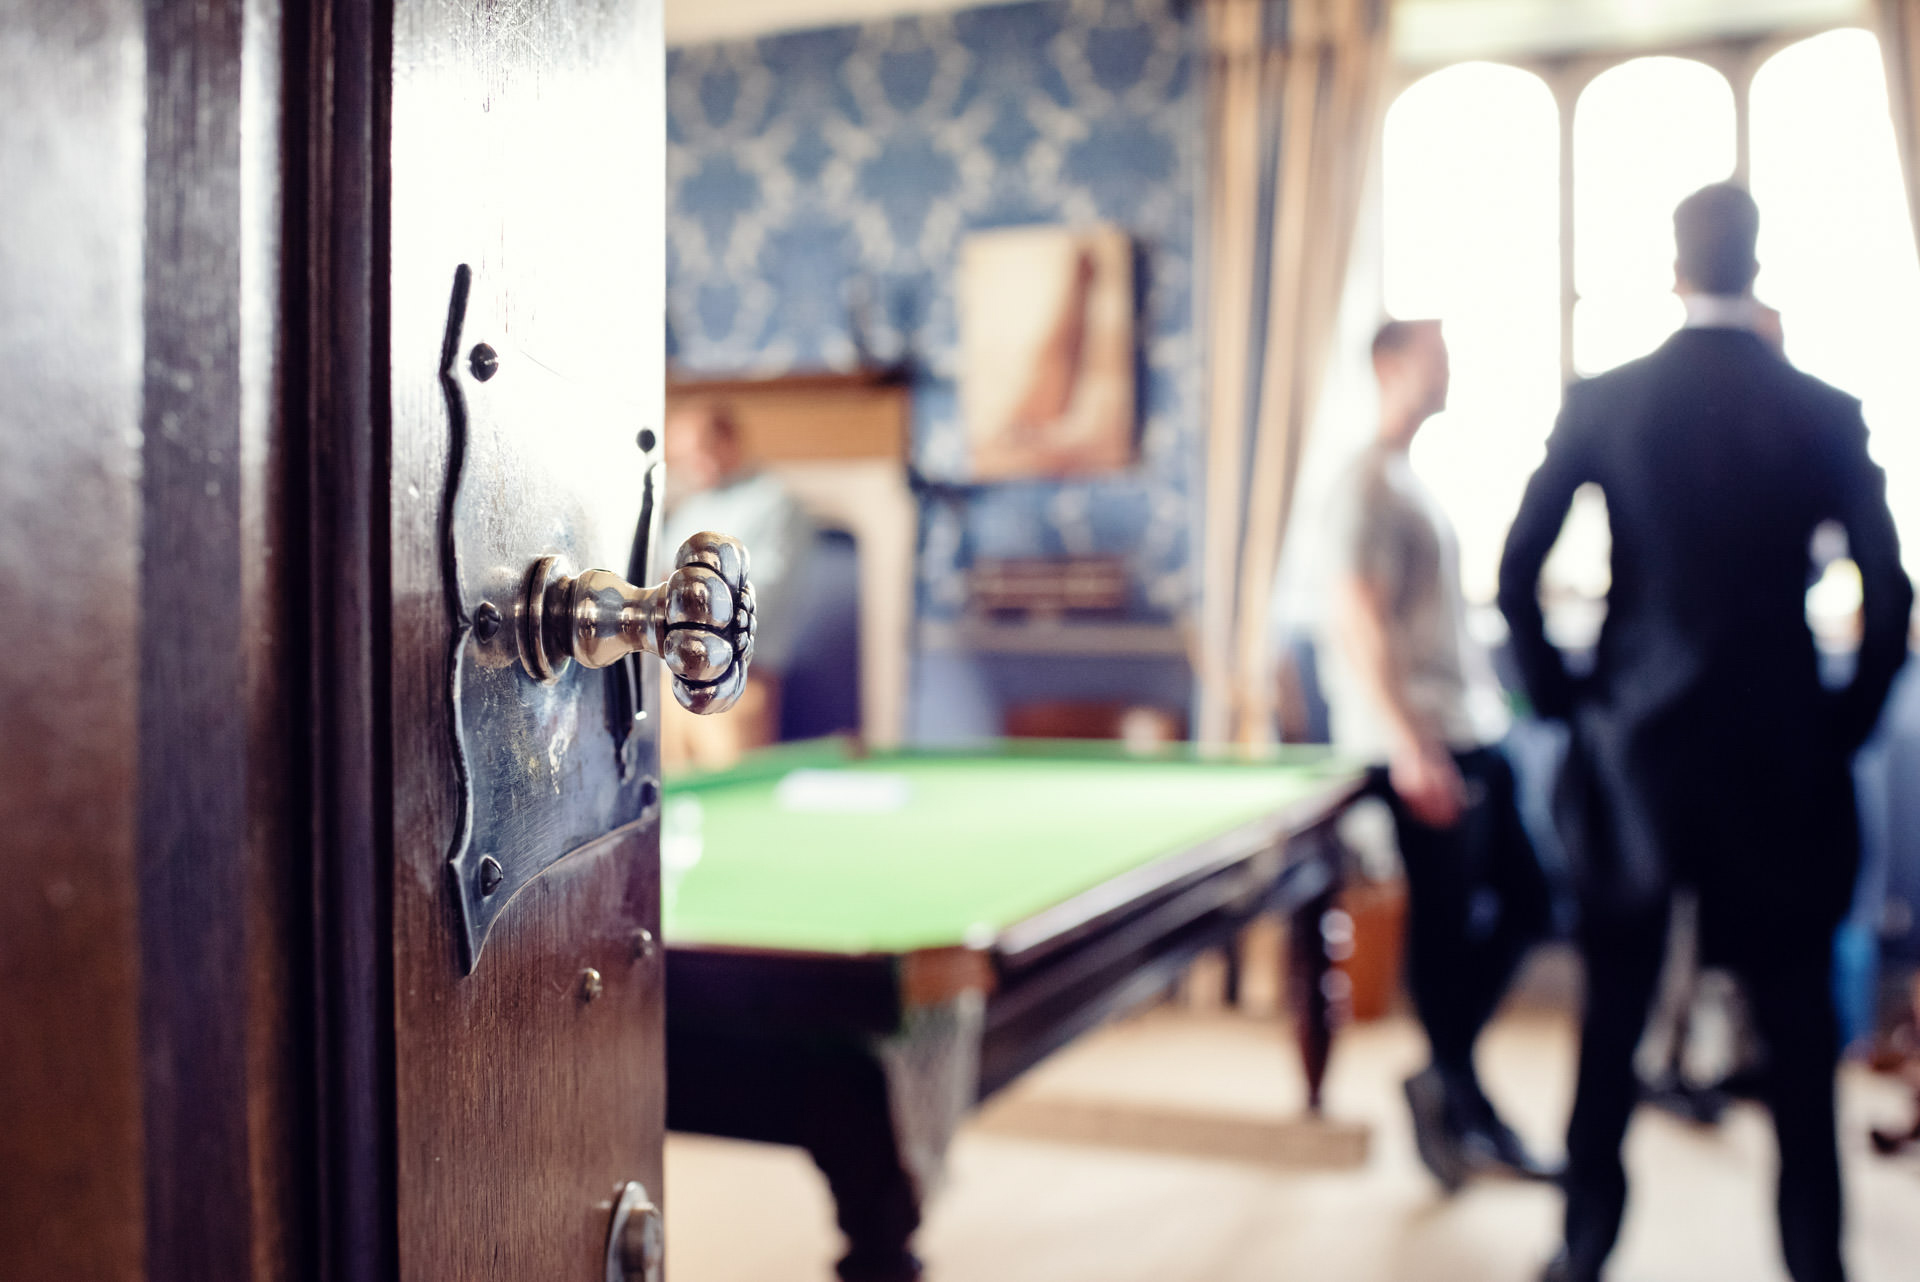 The groom, Best Man and Ushers in the Blue Room, relaxation room, with snooker table at Hengrave Hall, wedding venue in Suffolk, East Anglia